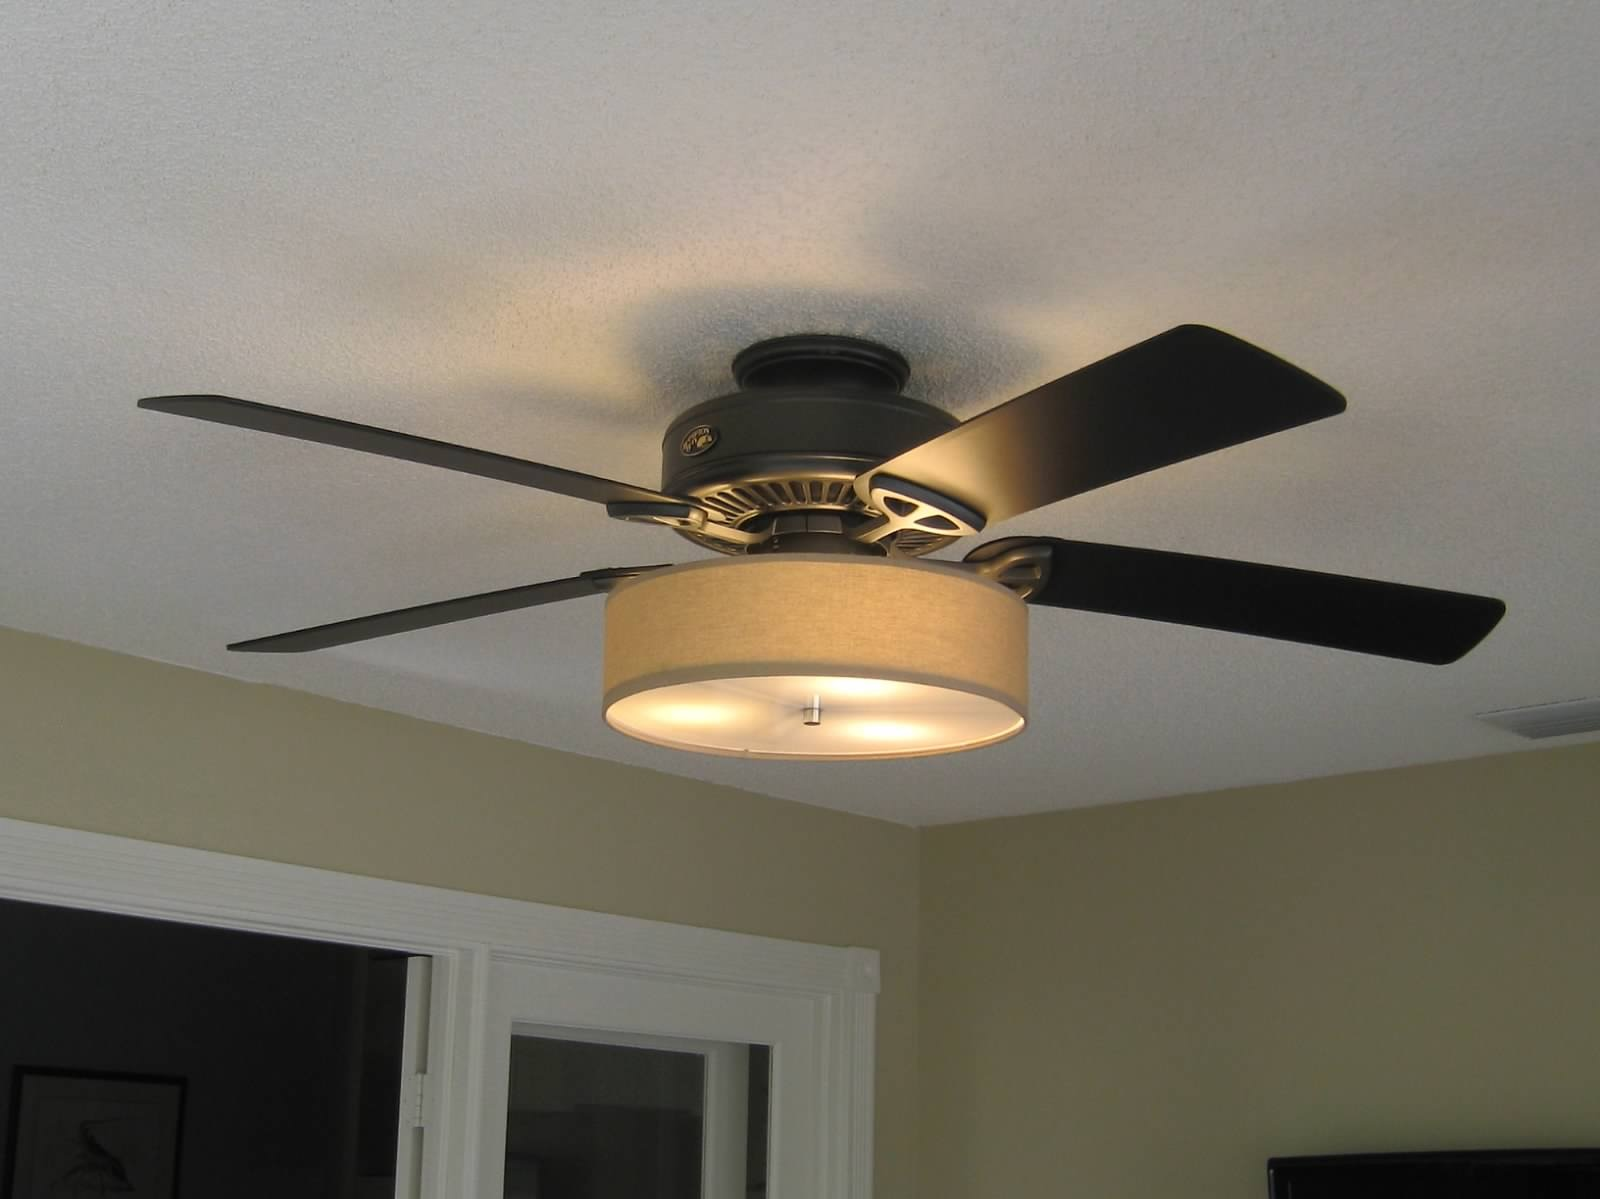 ideas light low of best fans ceiling profile lighting kit fan